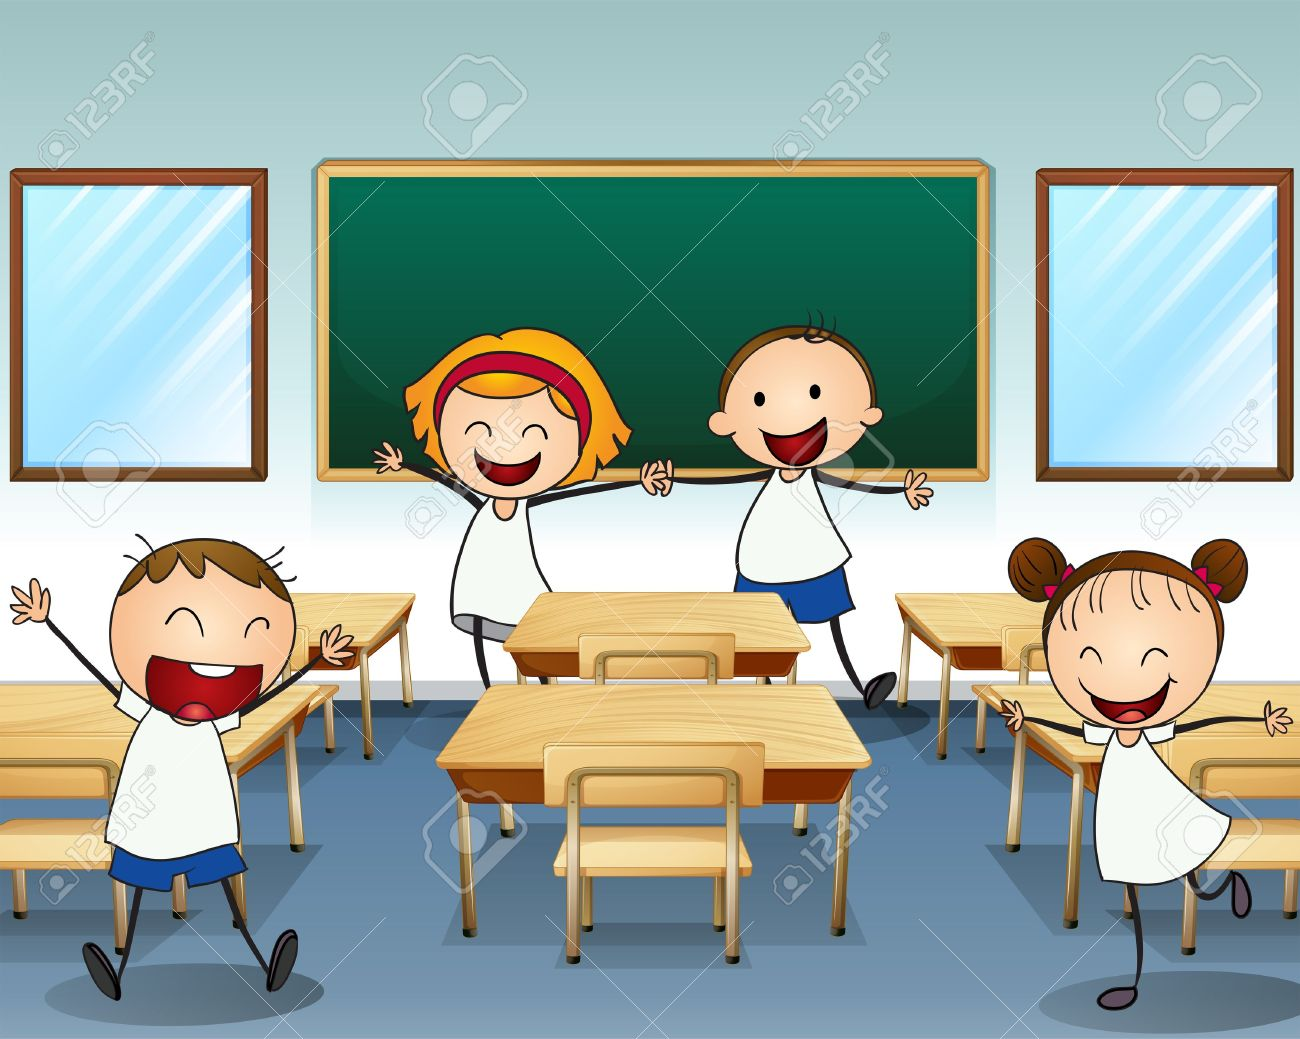 Moving clipart classroom Clipart clipart Classroom Collection collection